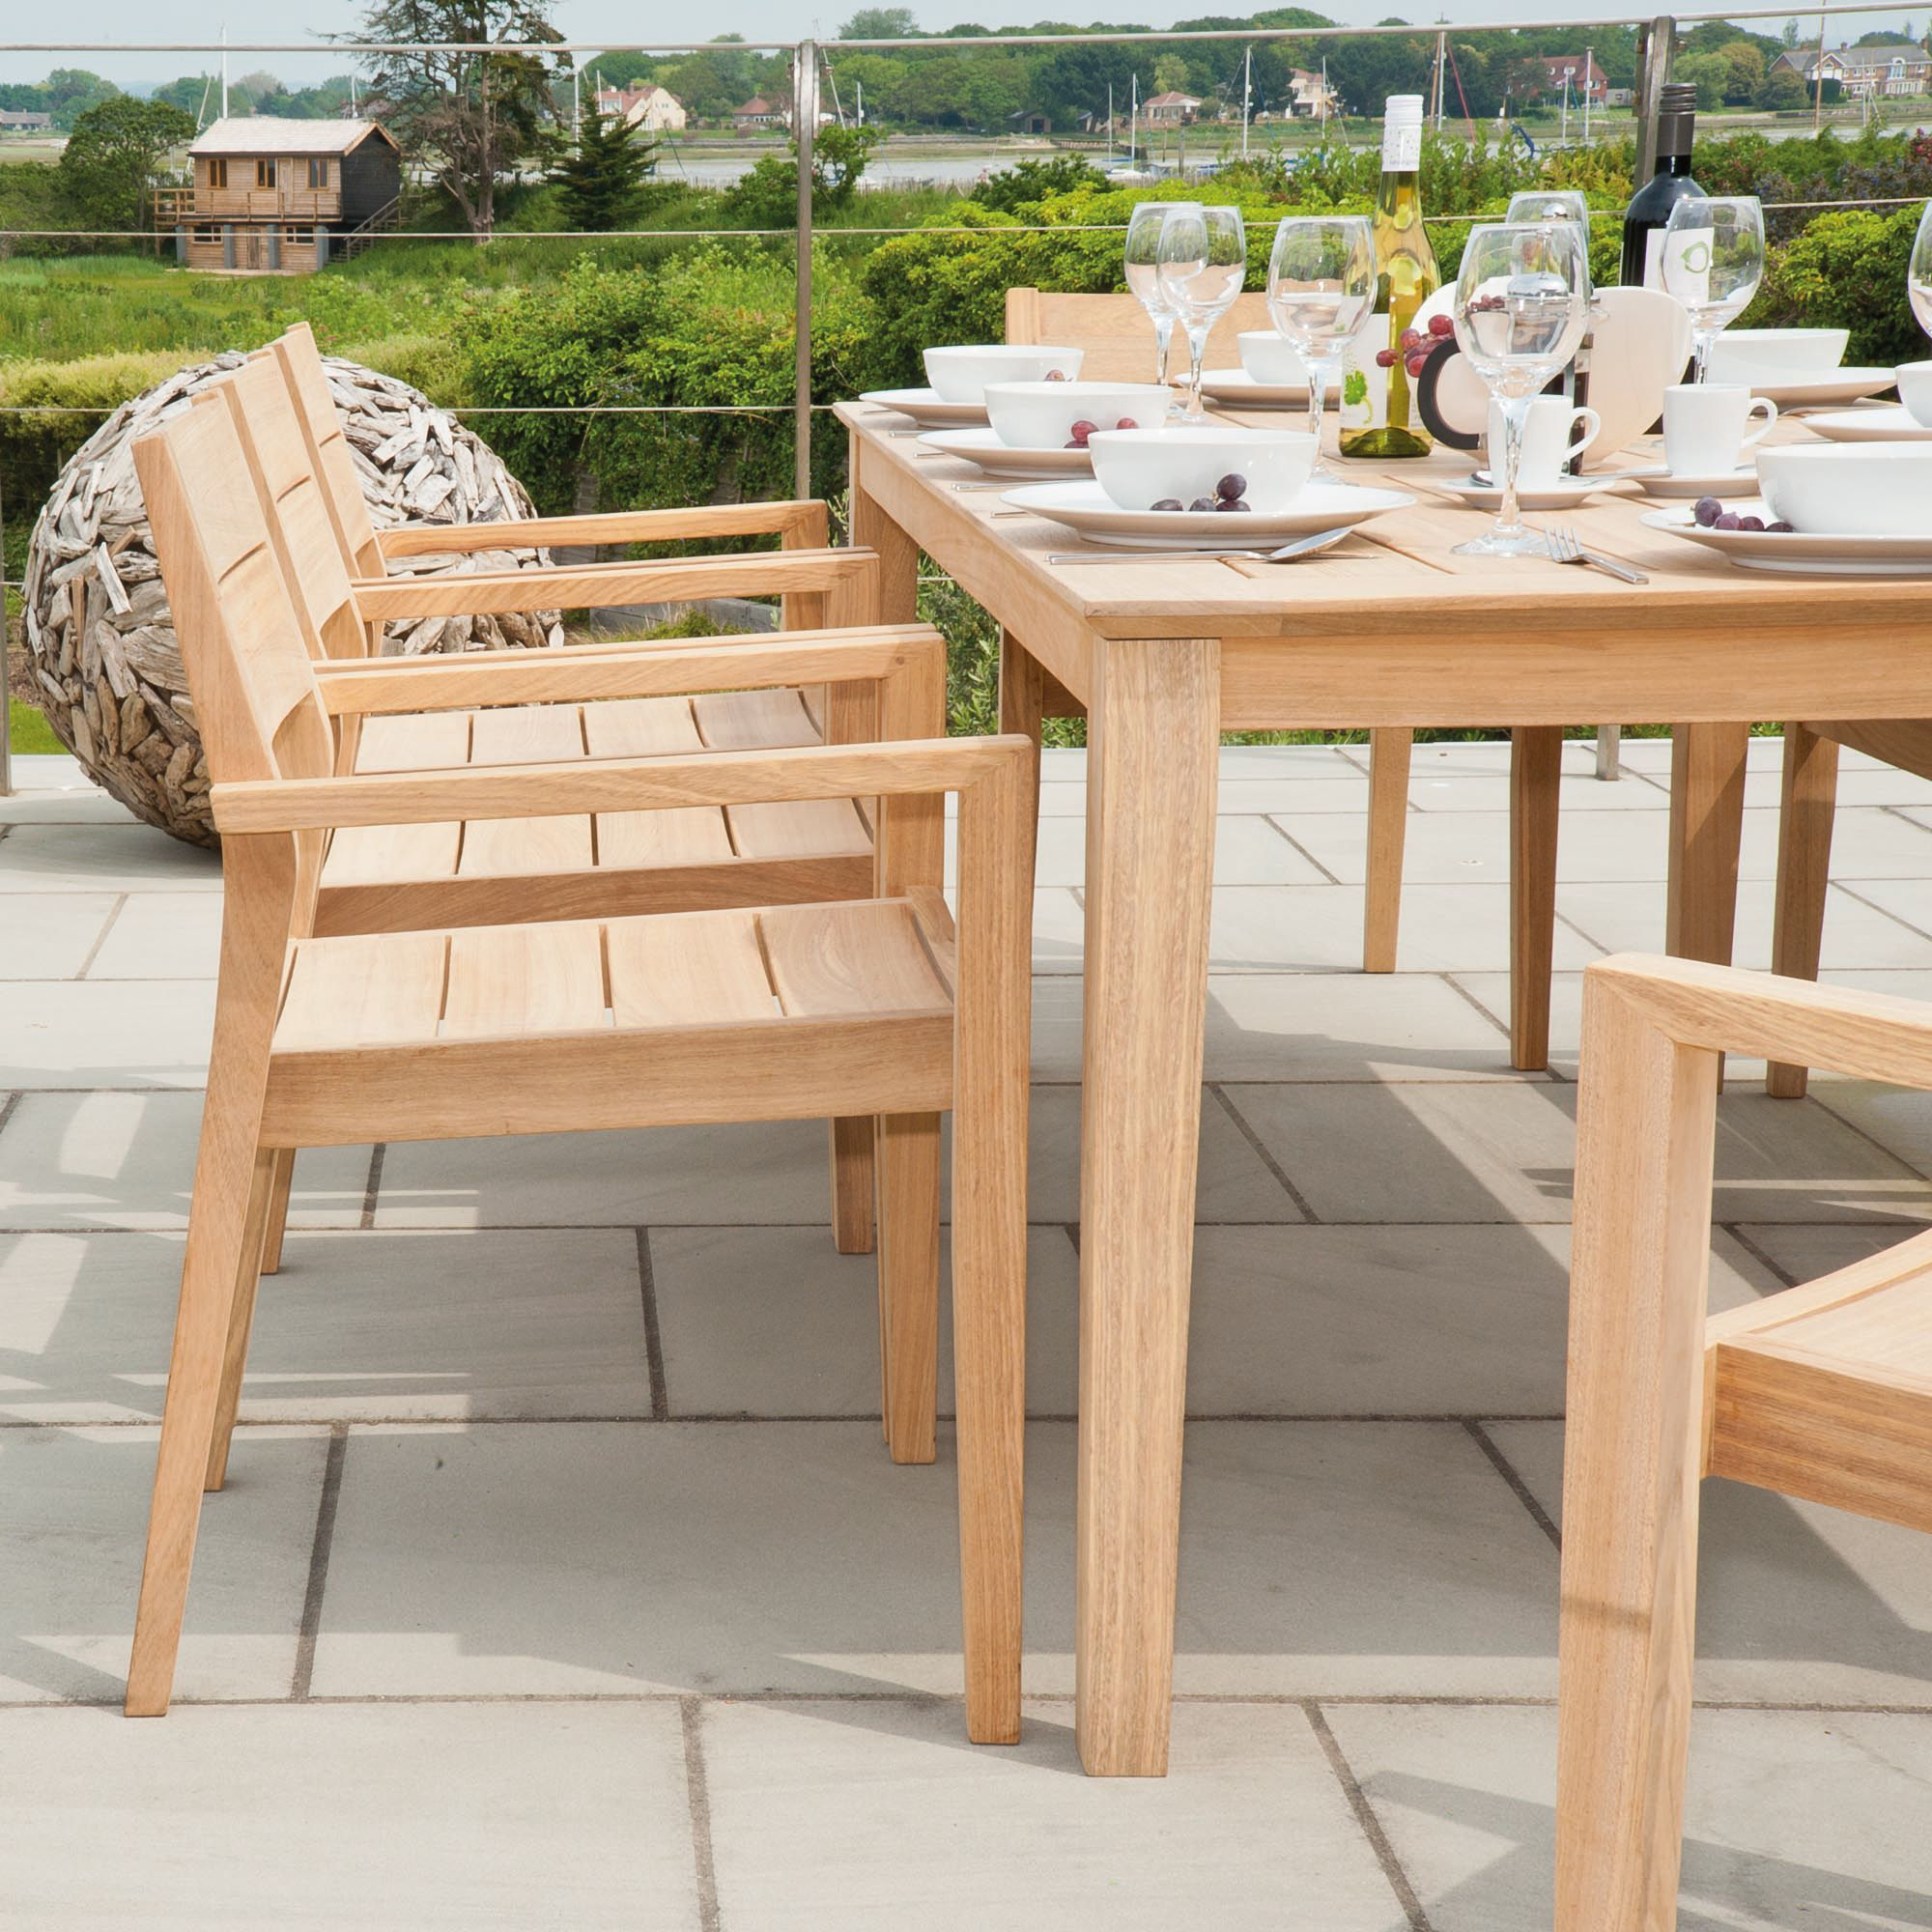 Tivoli in natural Roble wood similar to teak buth with golden